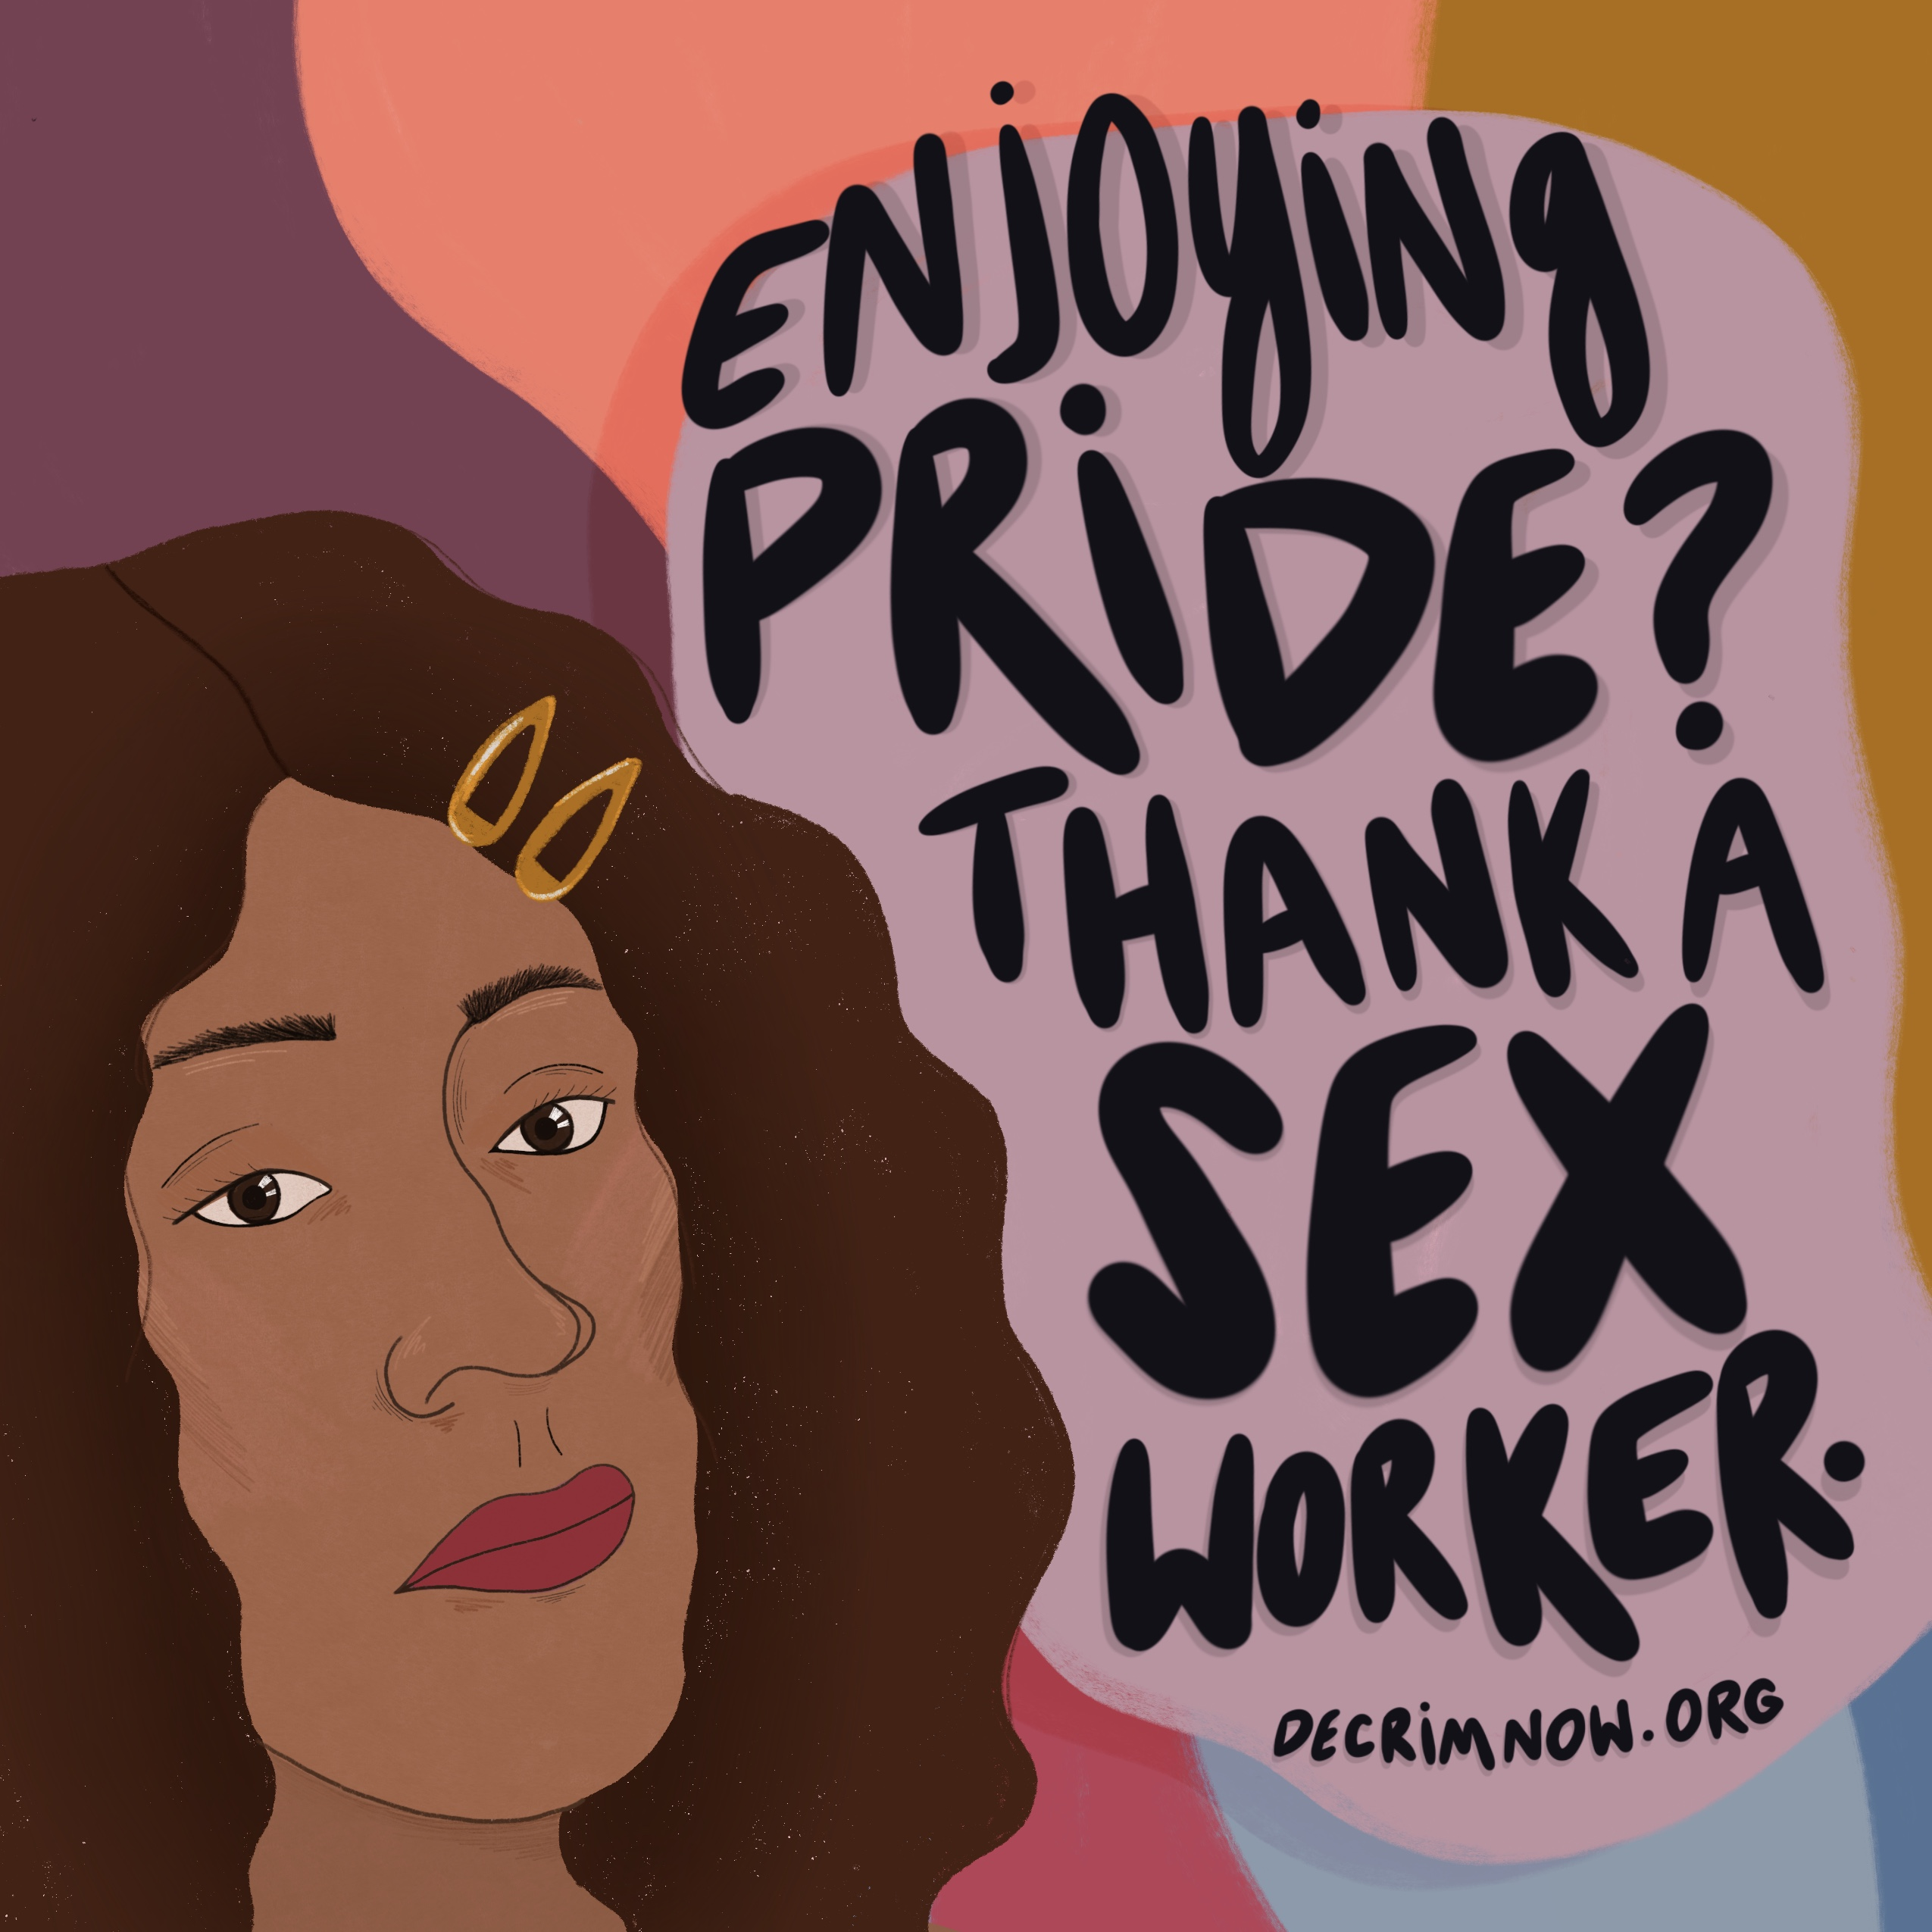 Illustration of black woman with the words enjoying pride thank a sex worker